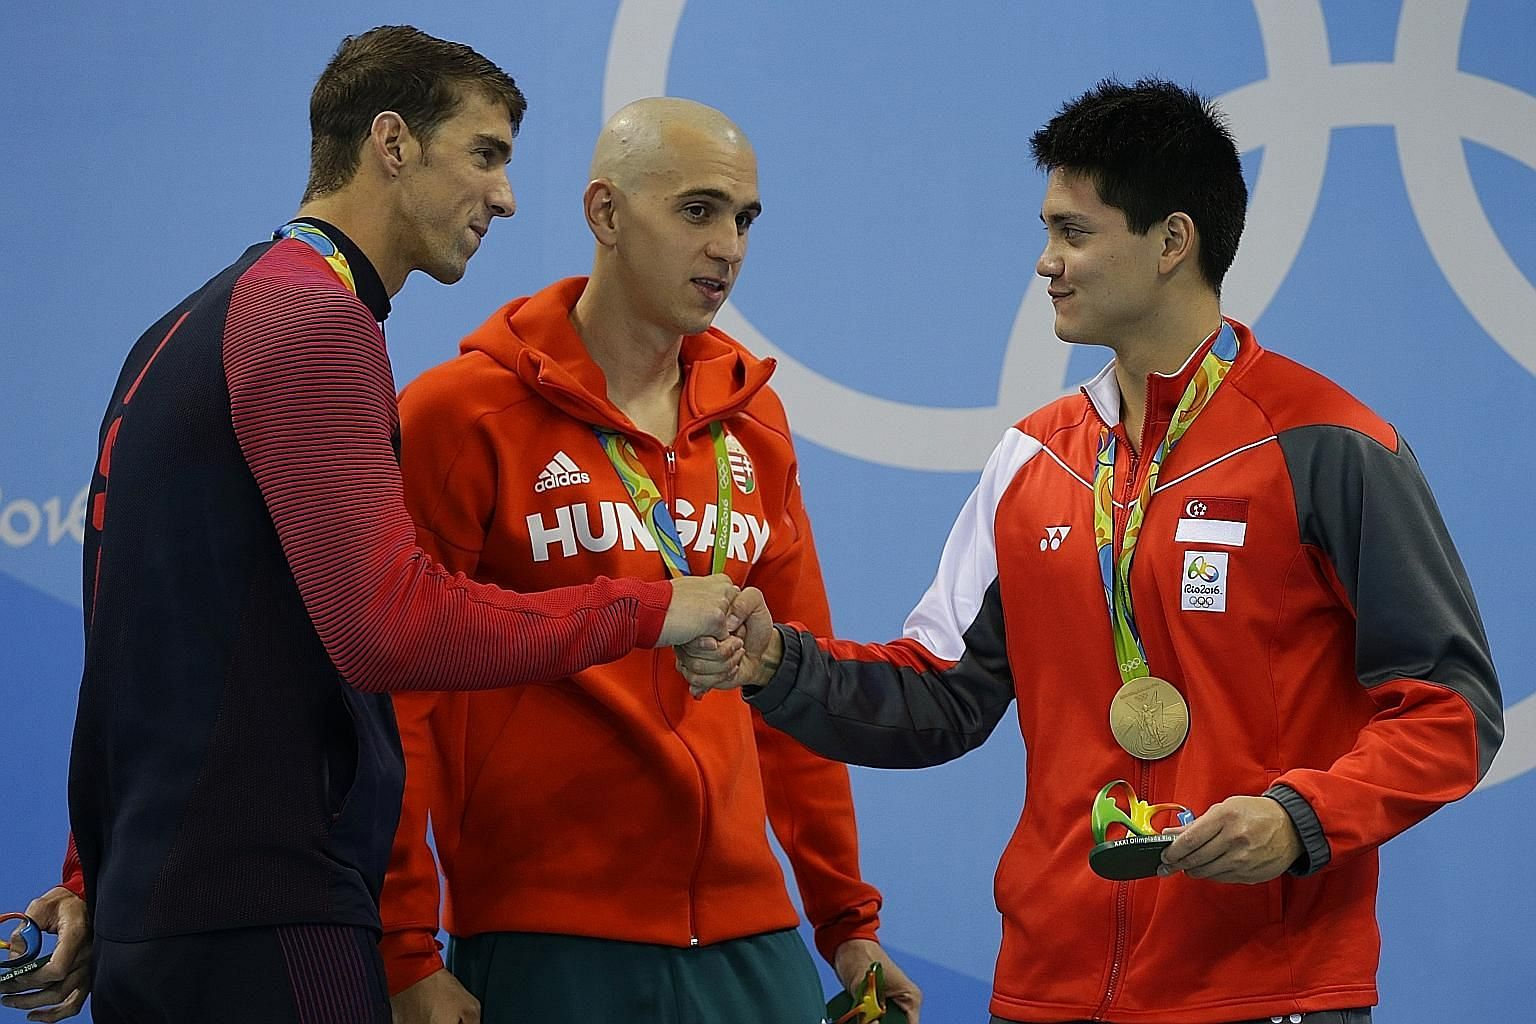 American Michael Phelps, the greatest swimmer in history, congratulating Olympic champion Joseph Schooling, as Hungary's Laszlo Cseh looks on after the men's 100m butterfly final. Chad le Clos also shared the silver.